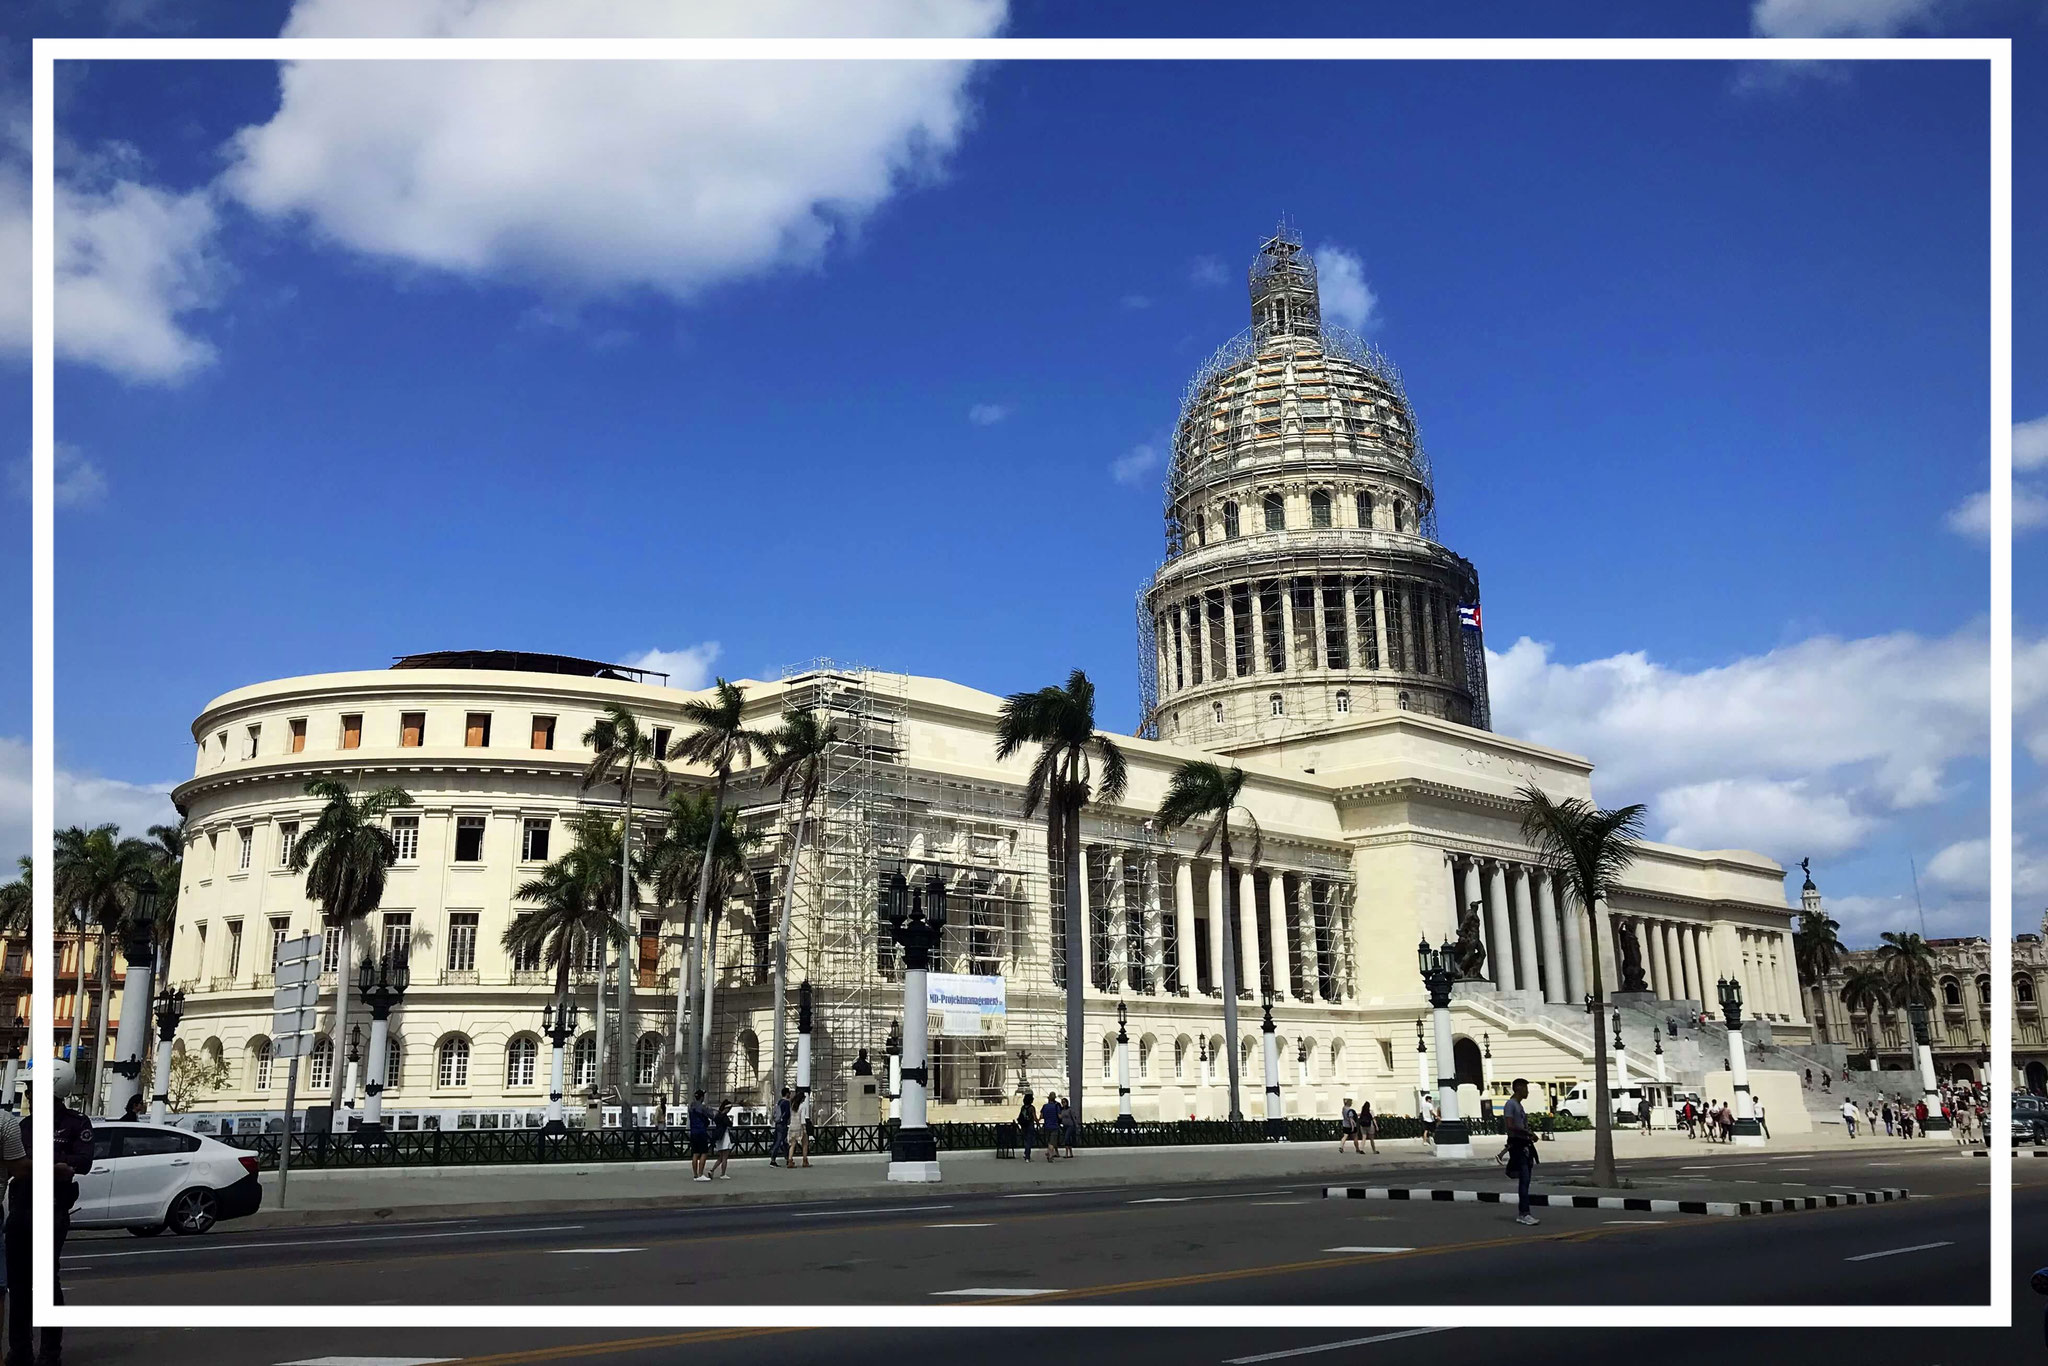 The Capitol of Havana - since 1928 the seat of government